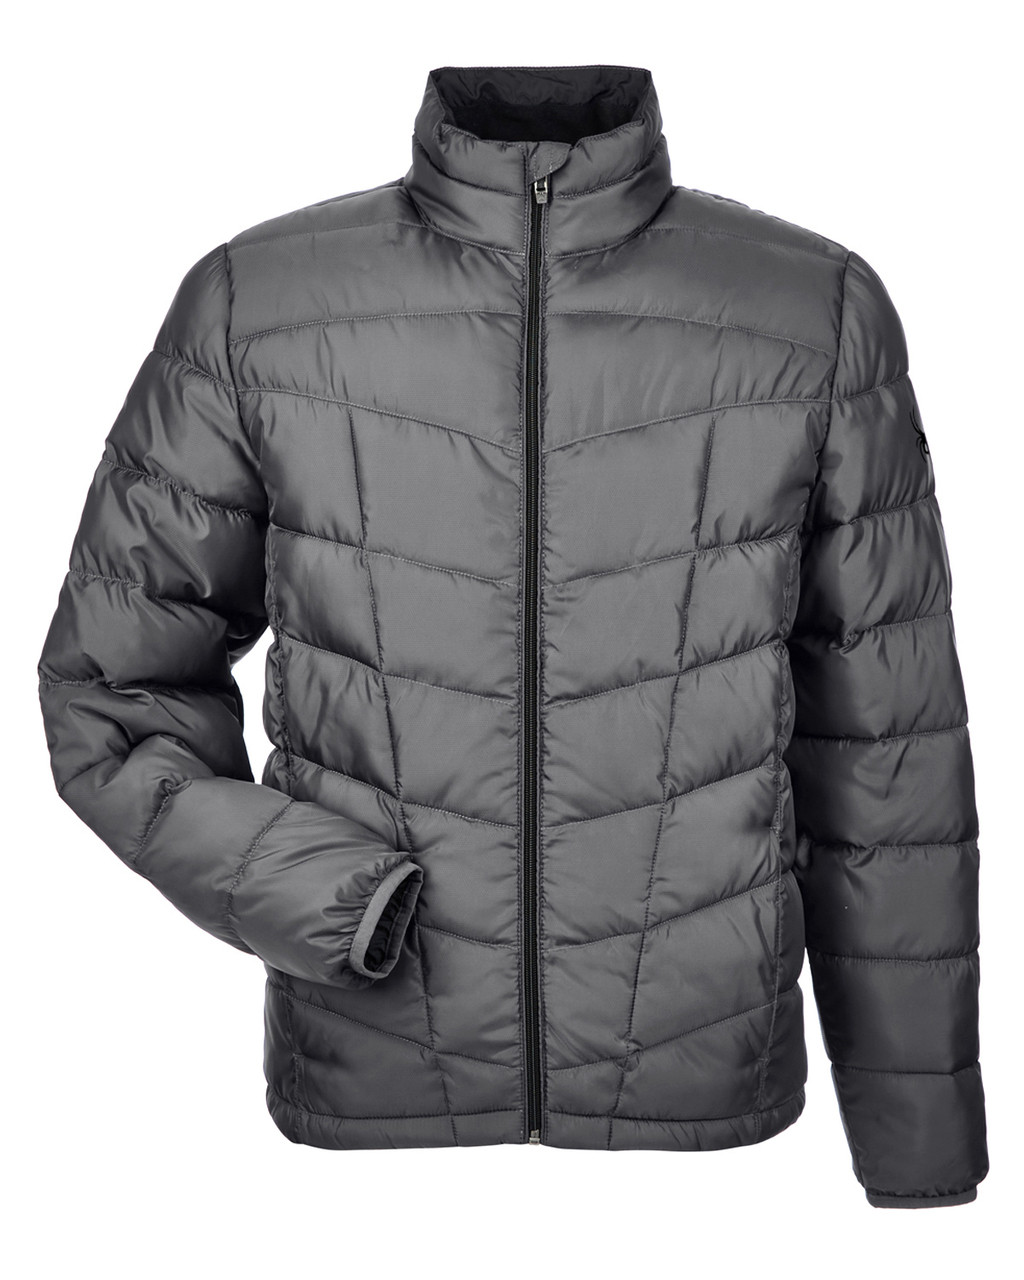 Polar/ Black - 187333 Spyder Men's Pelmo Insulated Puffer Jacket | BlankClothing.ca